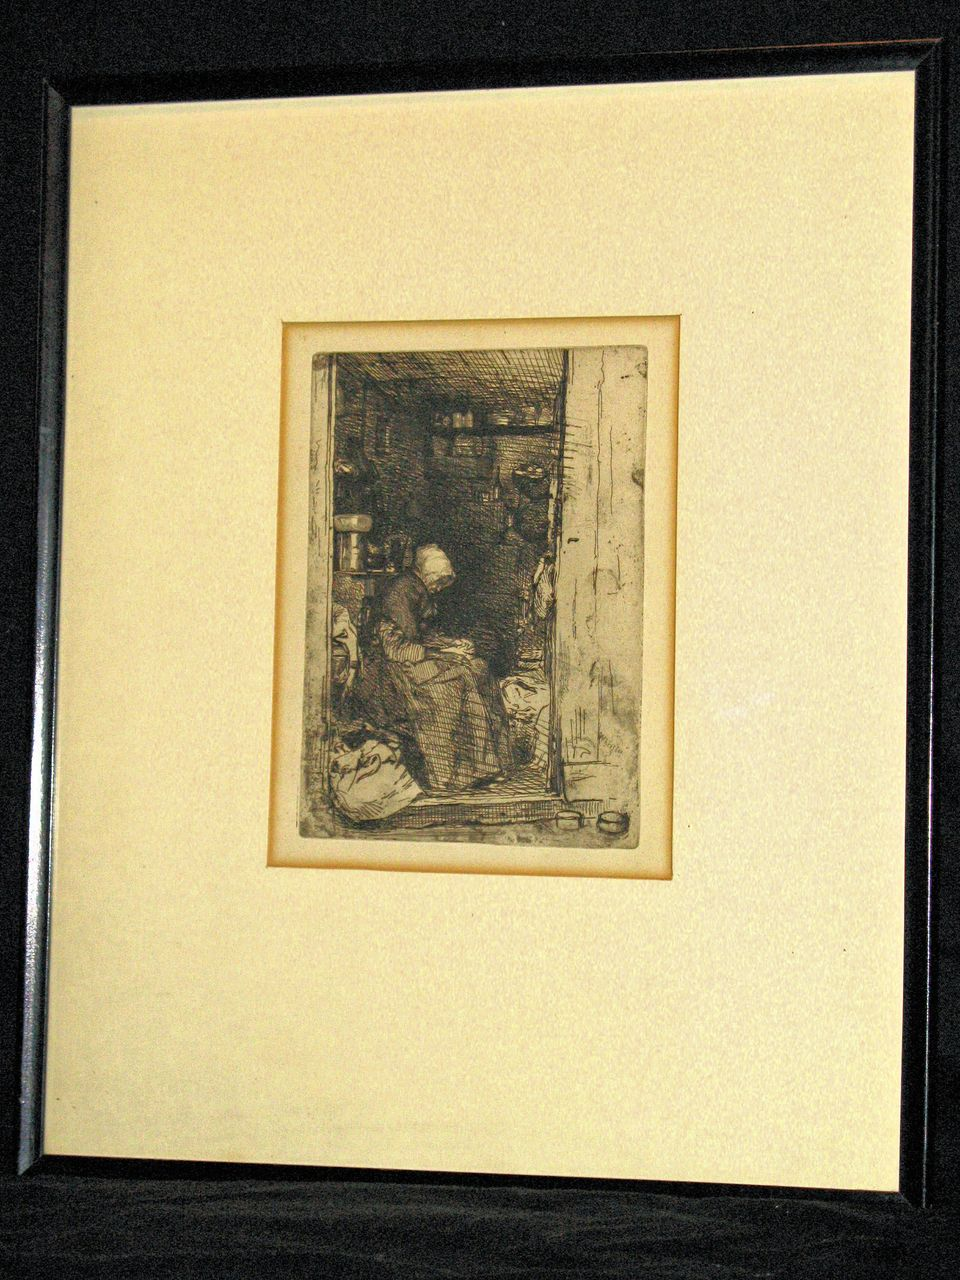 La Vielle aux Logues (The Old Rag-Woman) an etching by Whistler